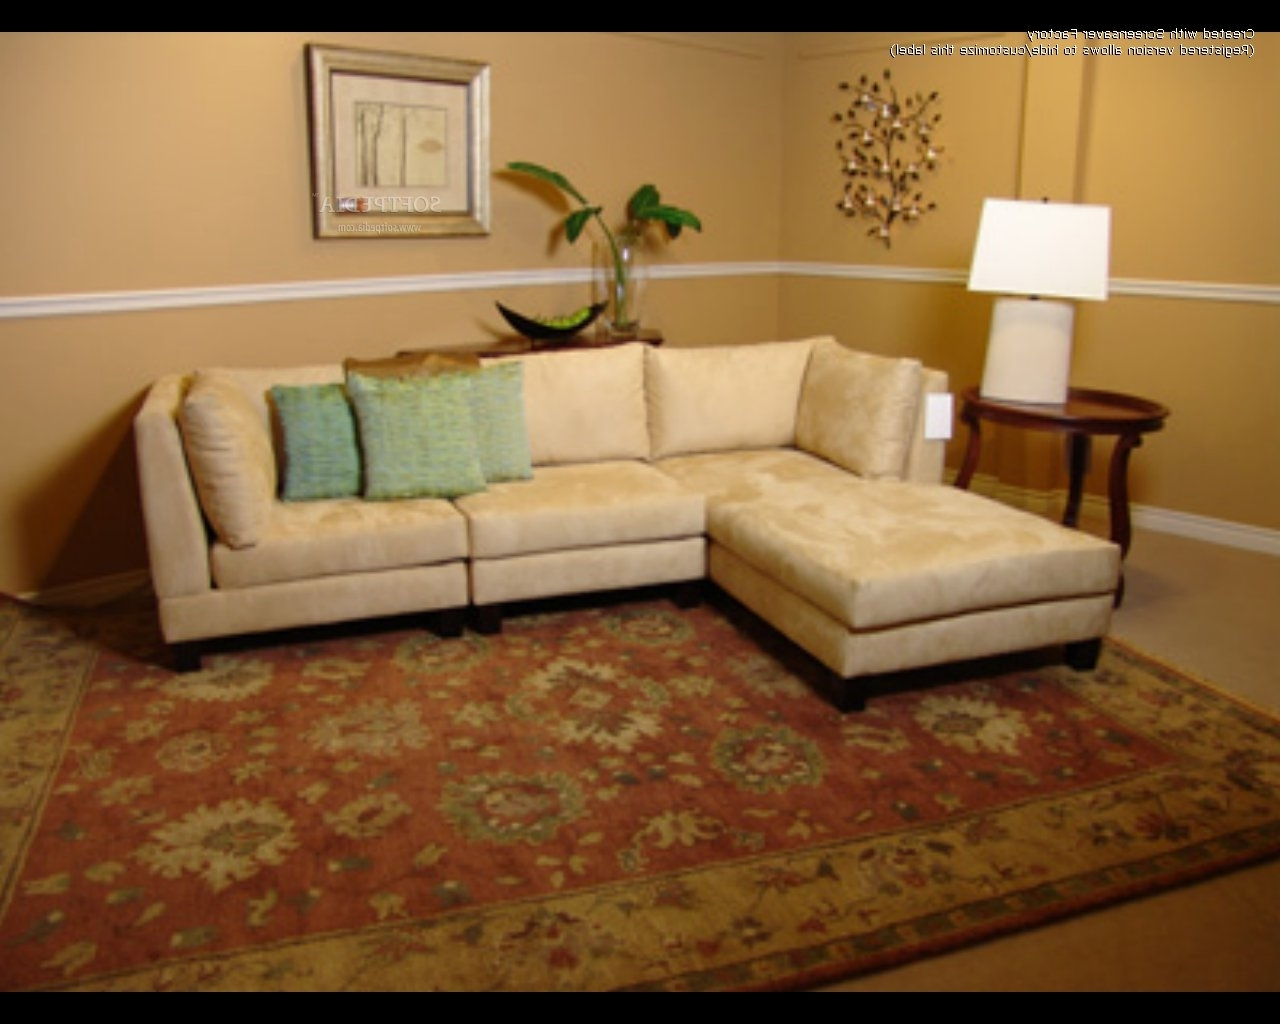 Widely Used Tan Sectionals With Chaise In Furniture: Charming Sectionals Sofas For Living Room Furniture (View 4 of 15)